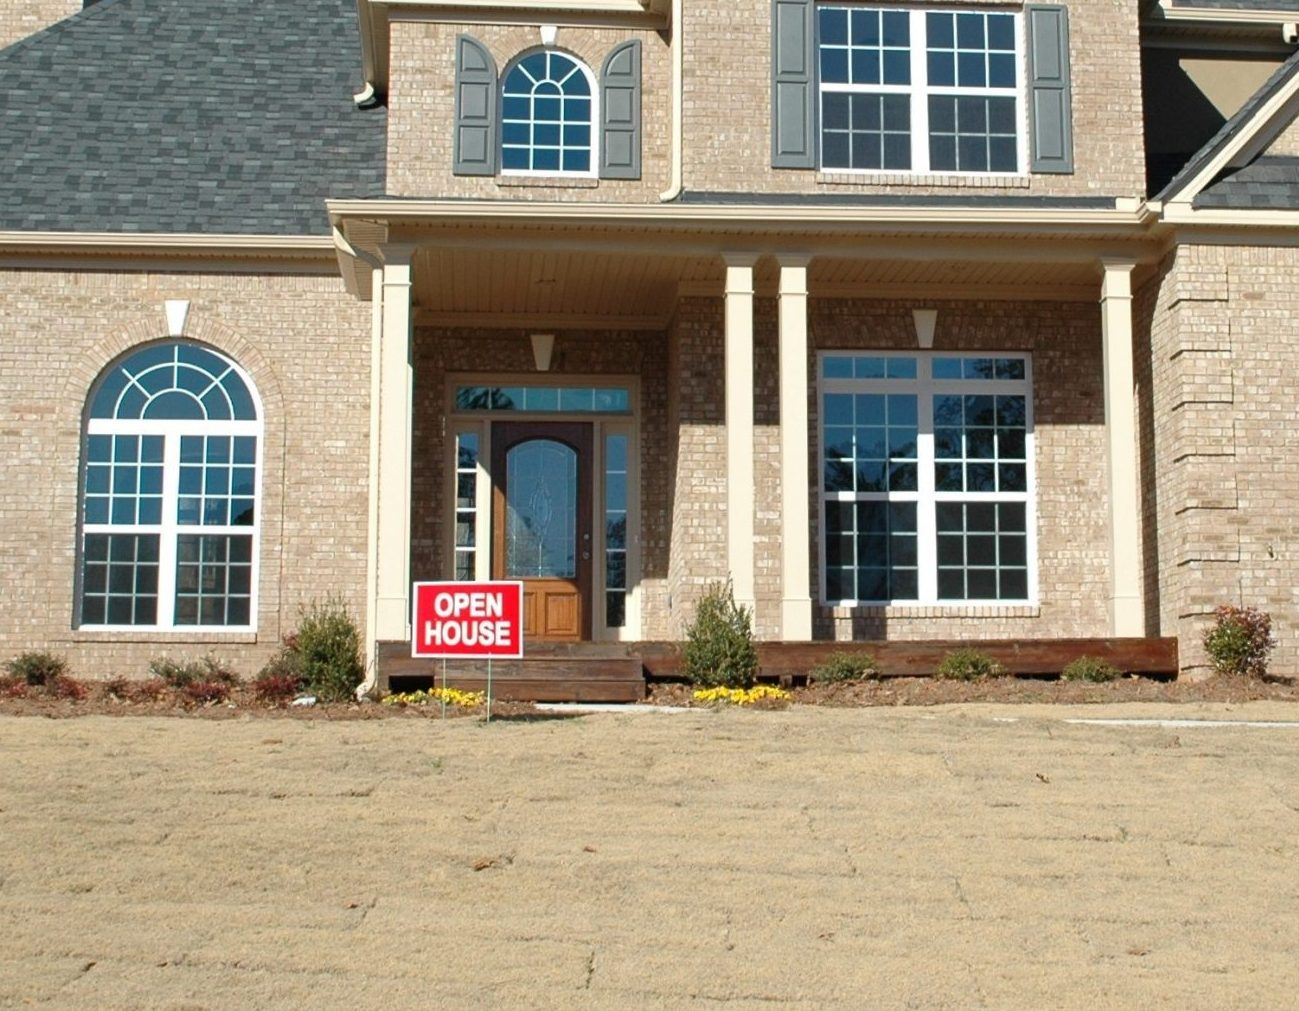 Manitowoc County Home Sales/Median Price Released